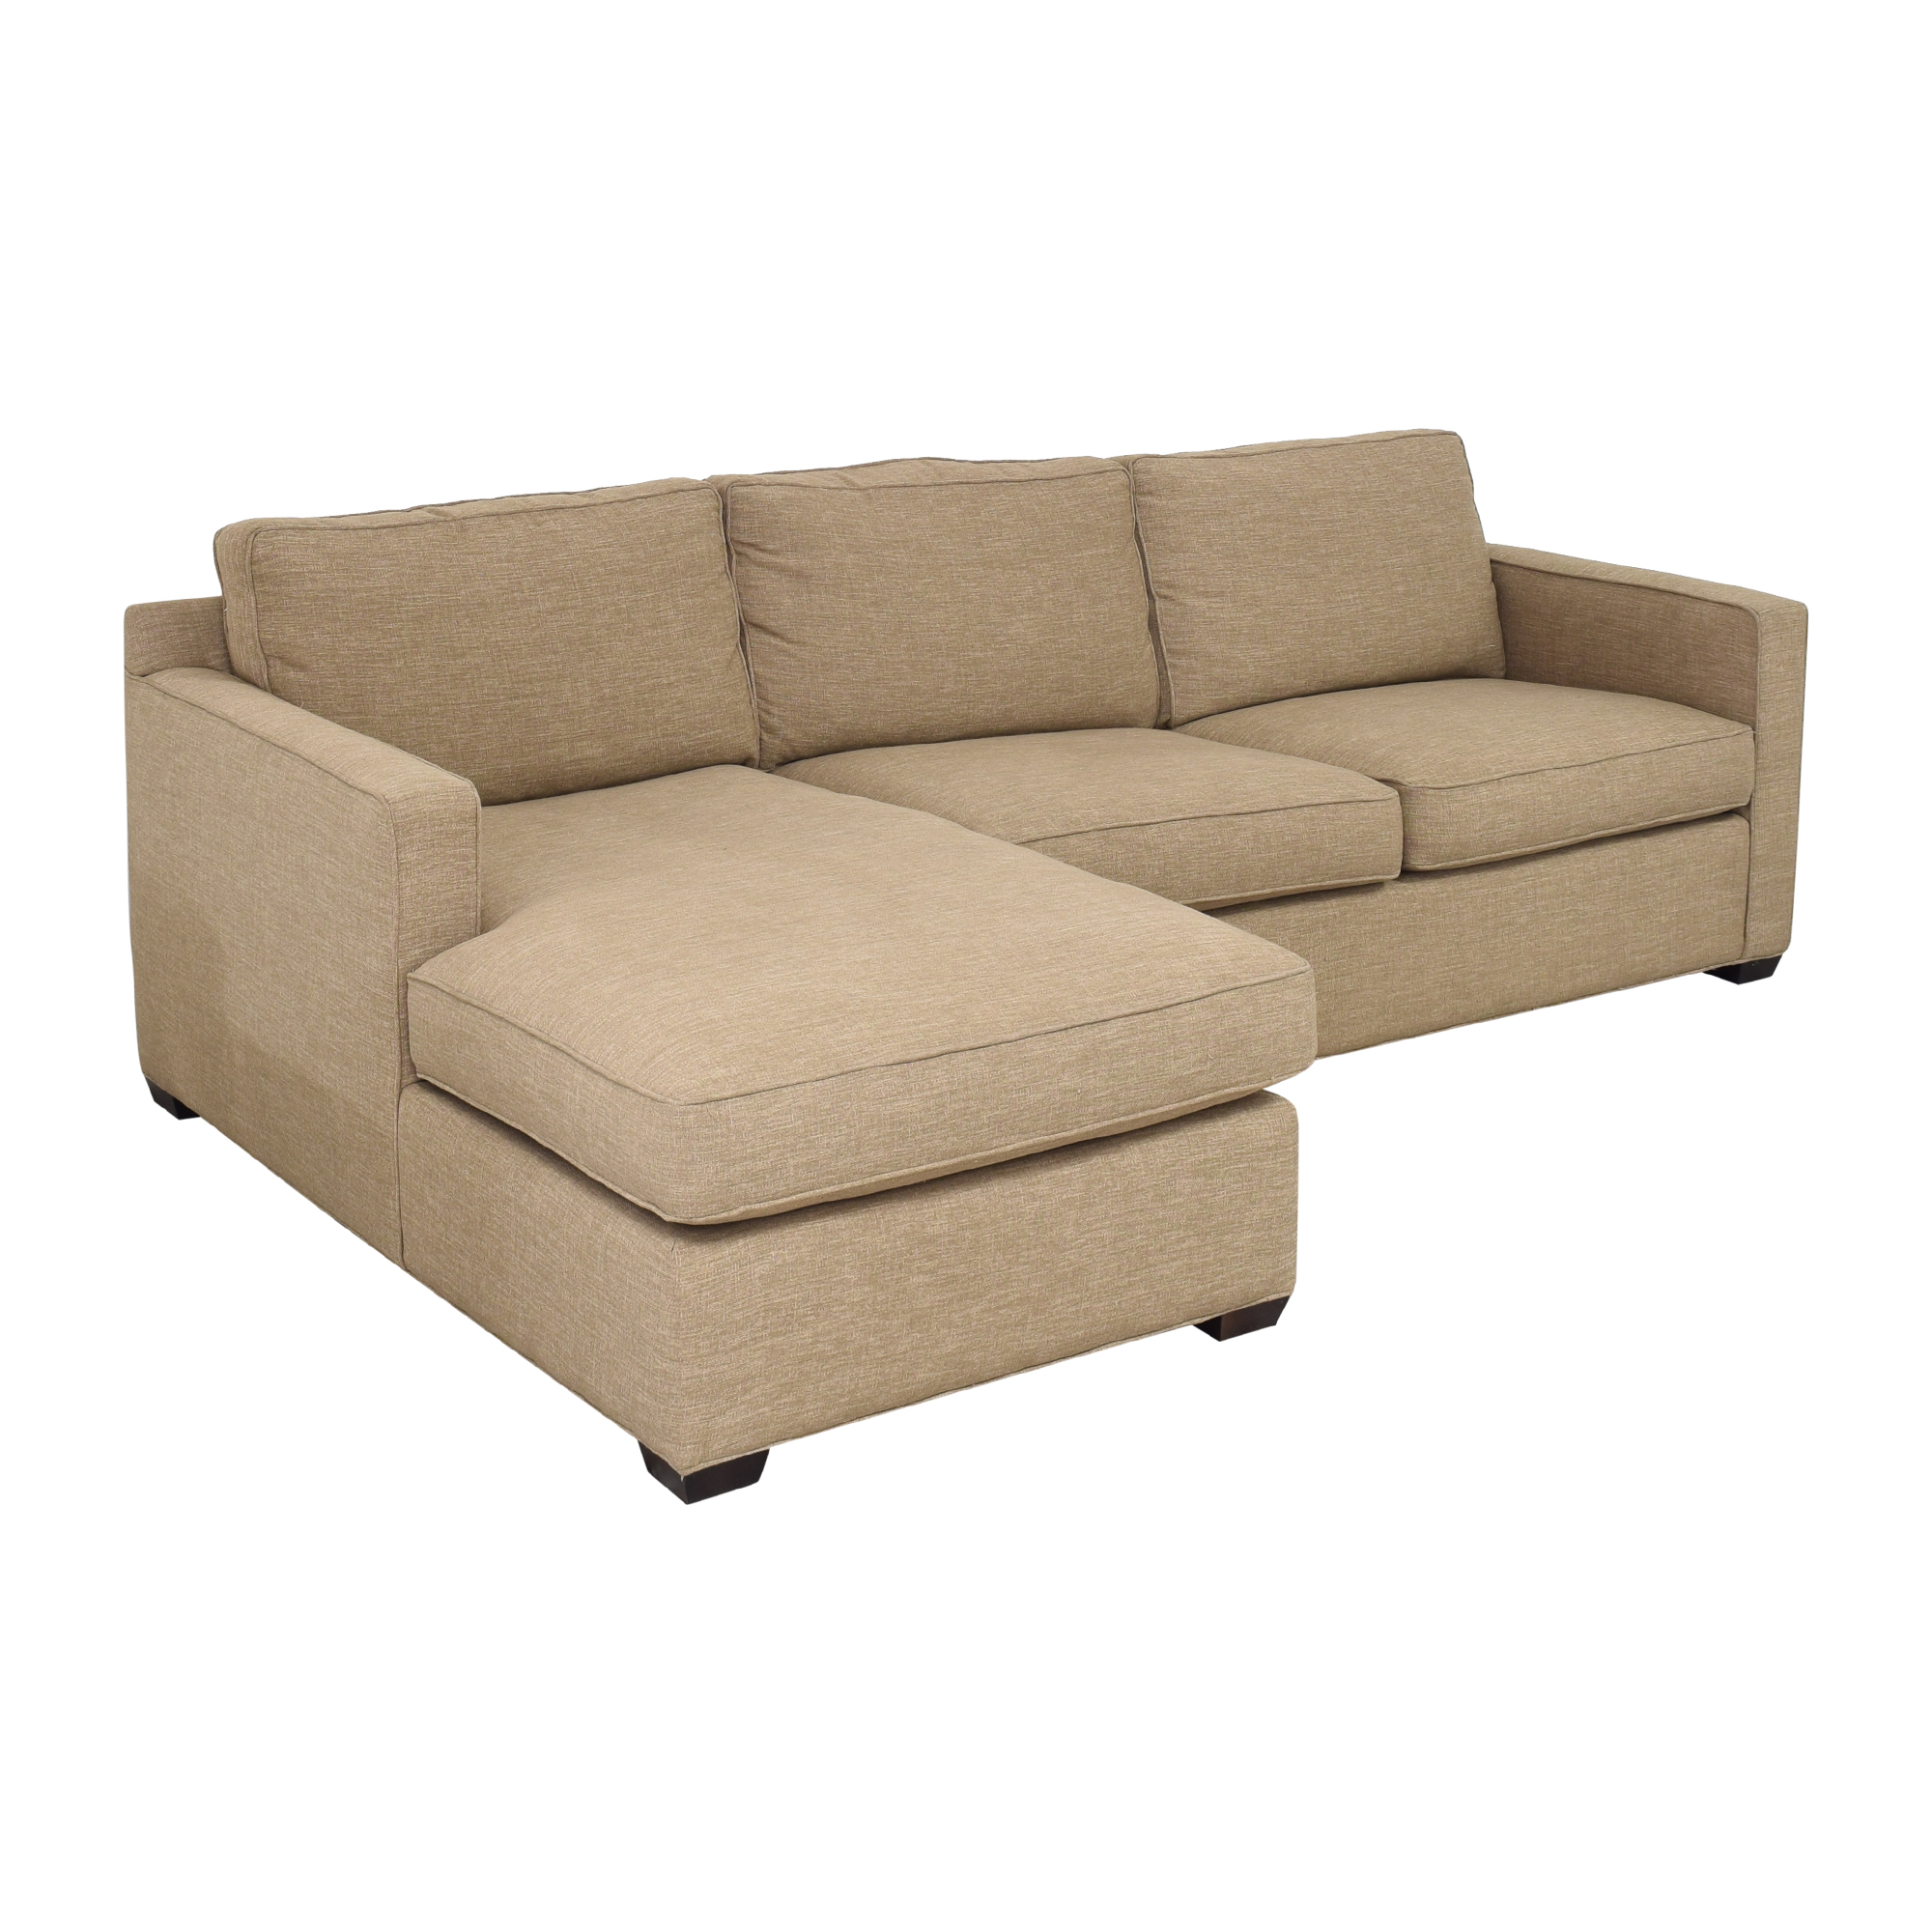 buy Crate & Barrel Crate & Barrel Sectional Sofa with Chaise online